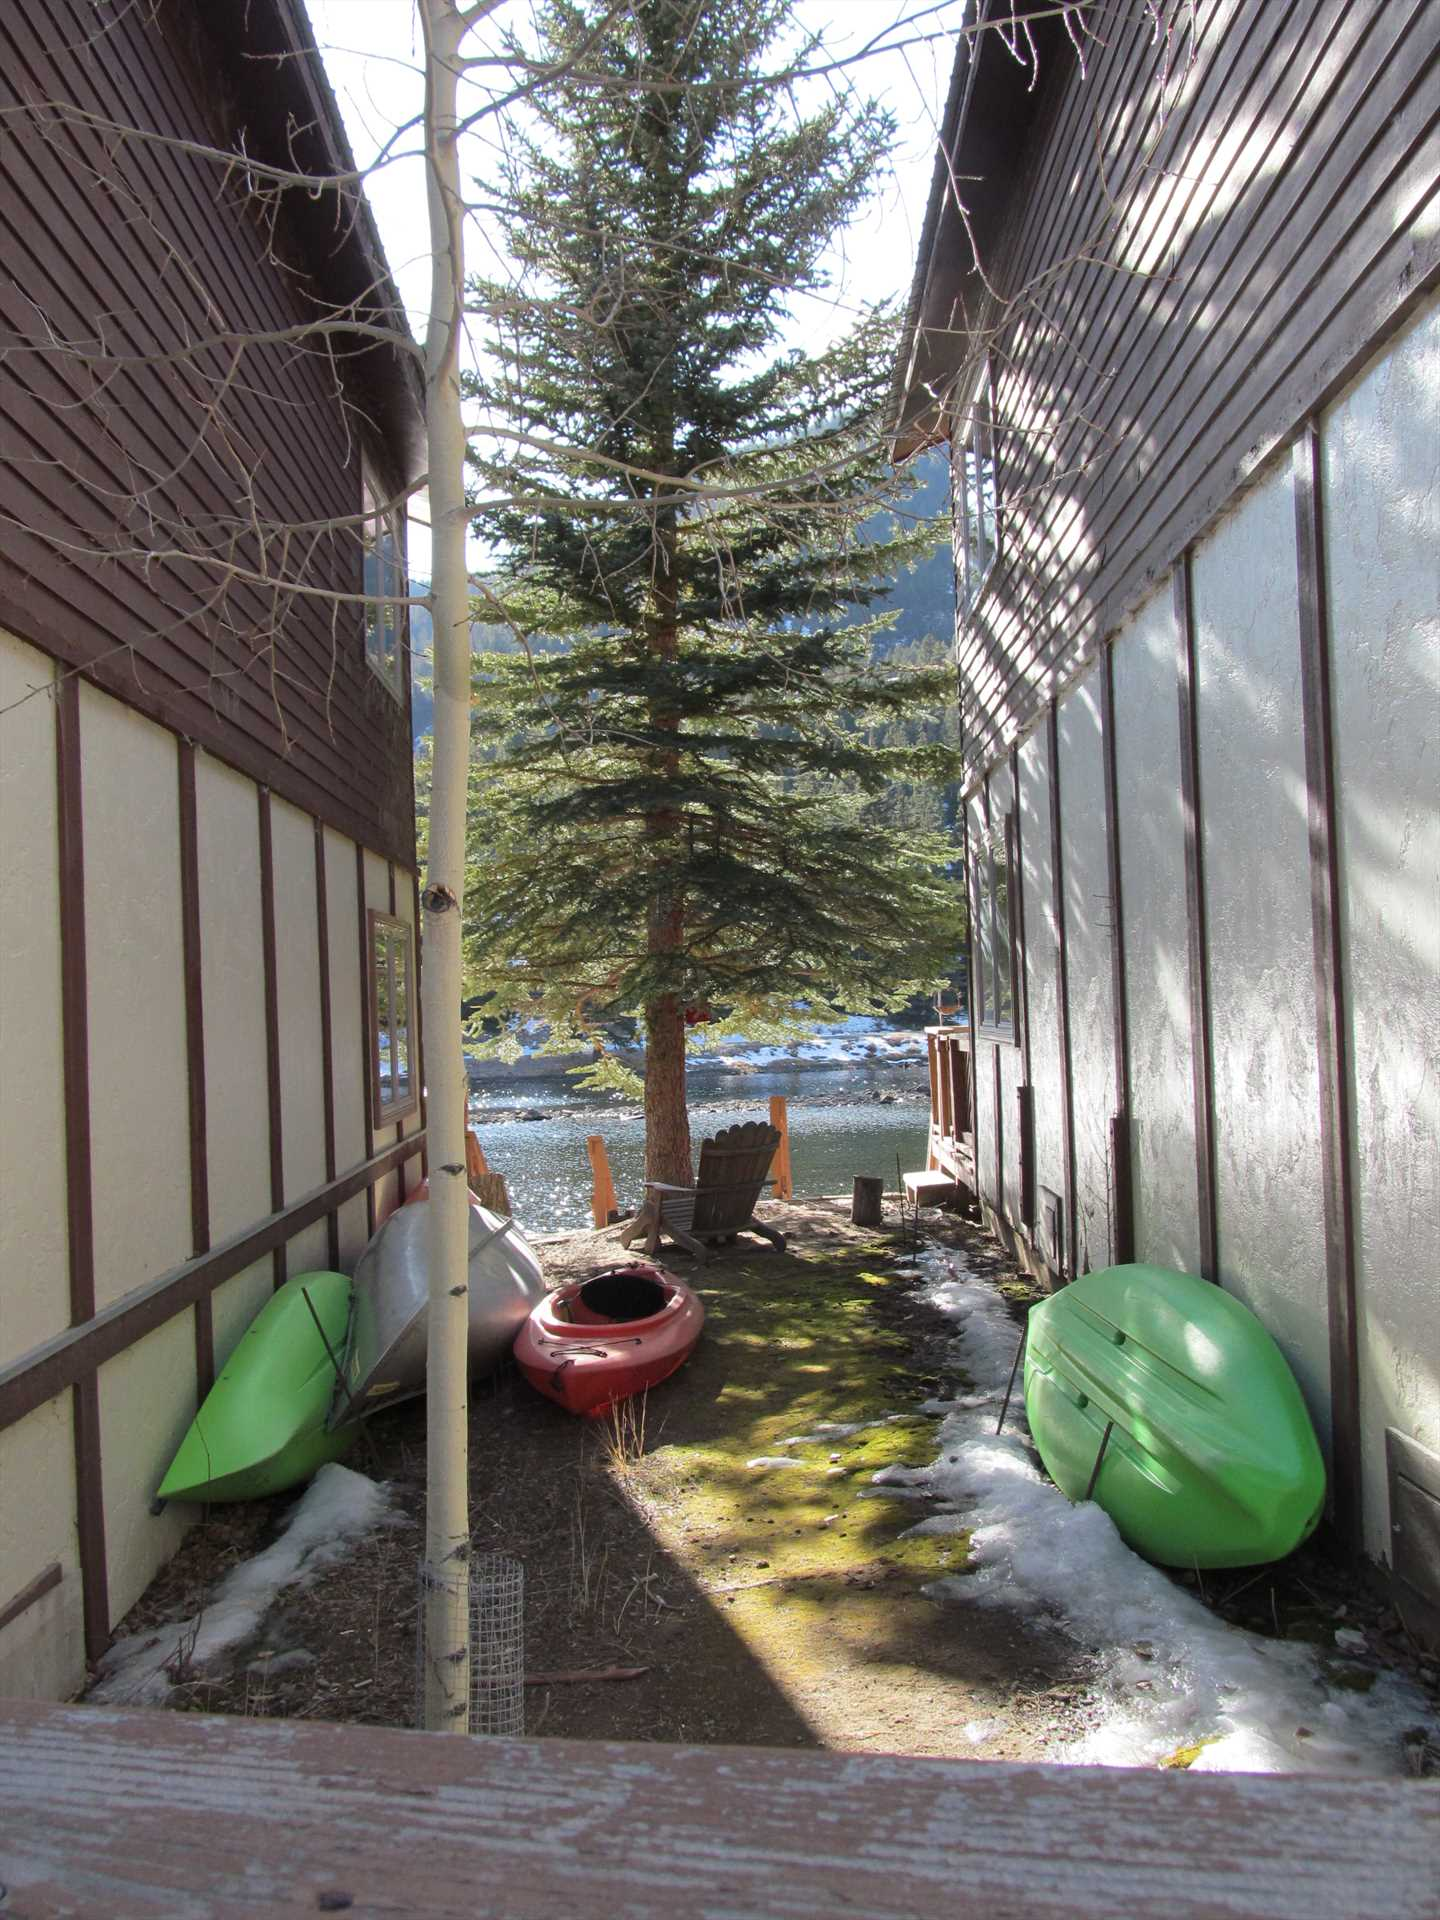 Yard area between townhomes to store your kayak (kayaks are